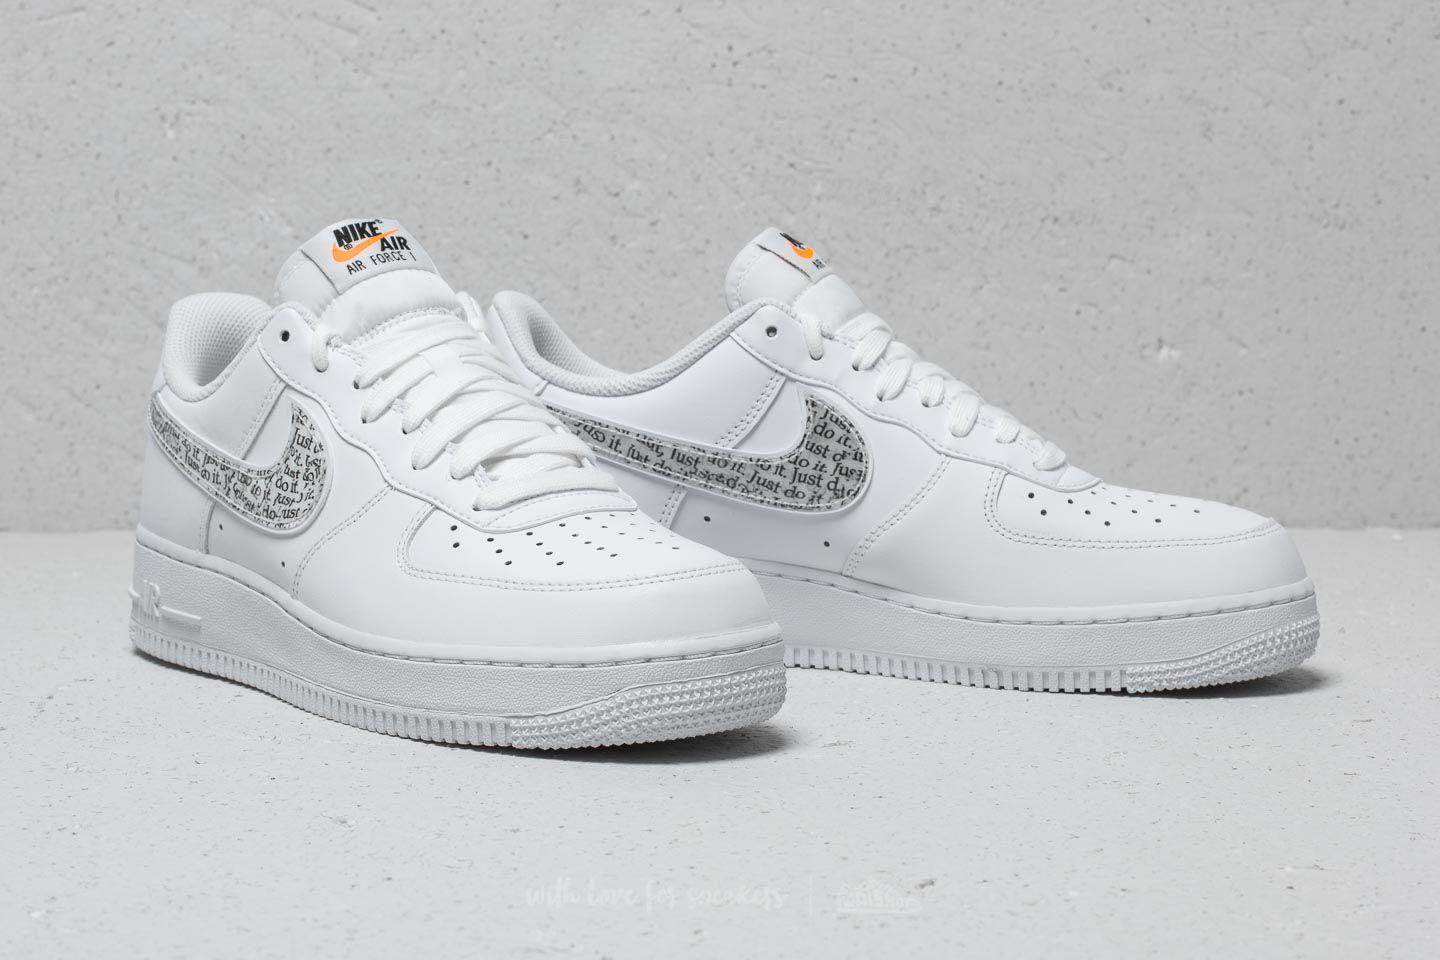 sale retailer d98a1 11da6 Nike Air Force 1 ́07 Lv8 Jdi Lntc White  White-black-total Orange in ...